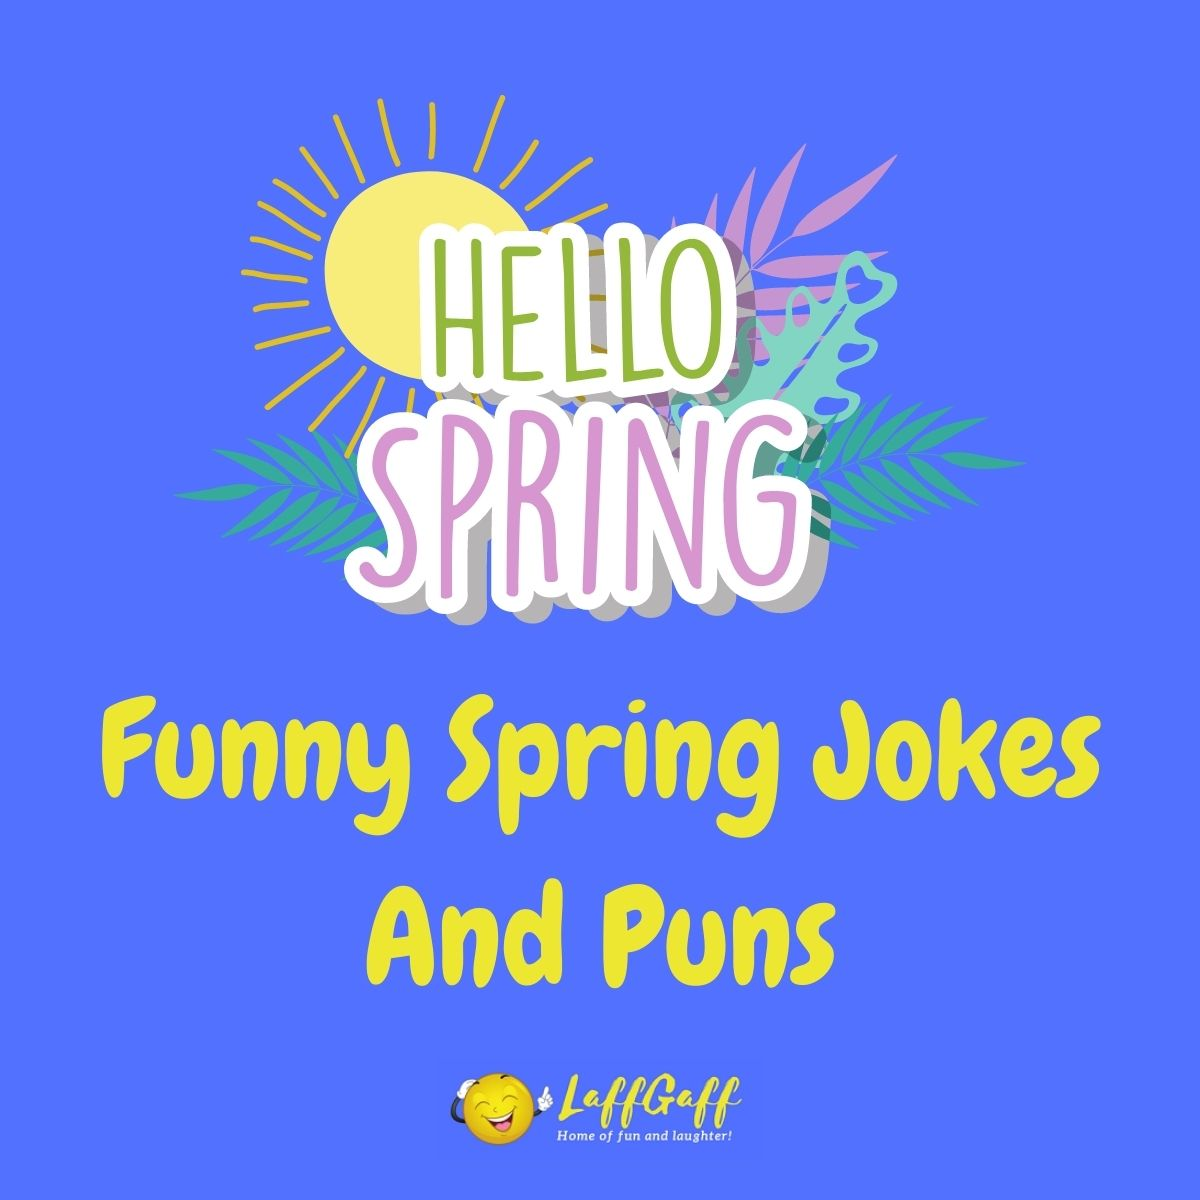 Featured image for a page of funny spring jokes and puns.